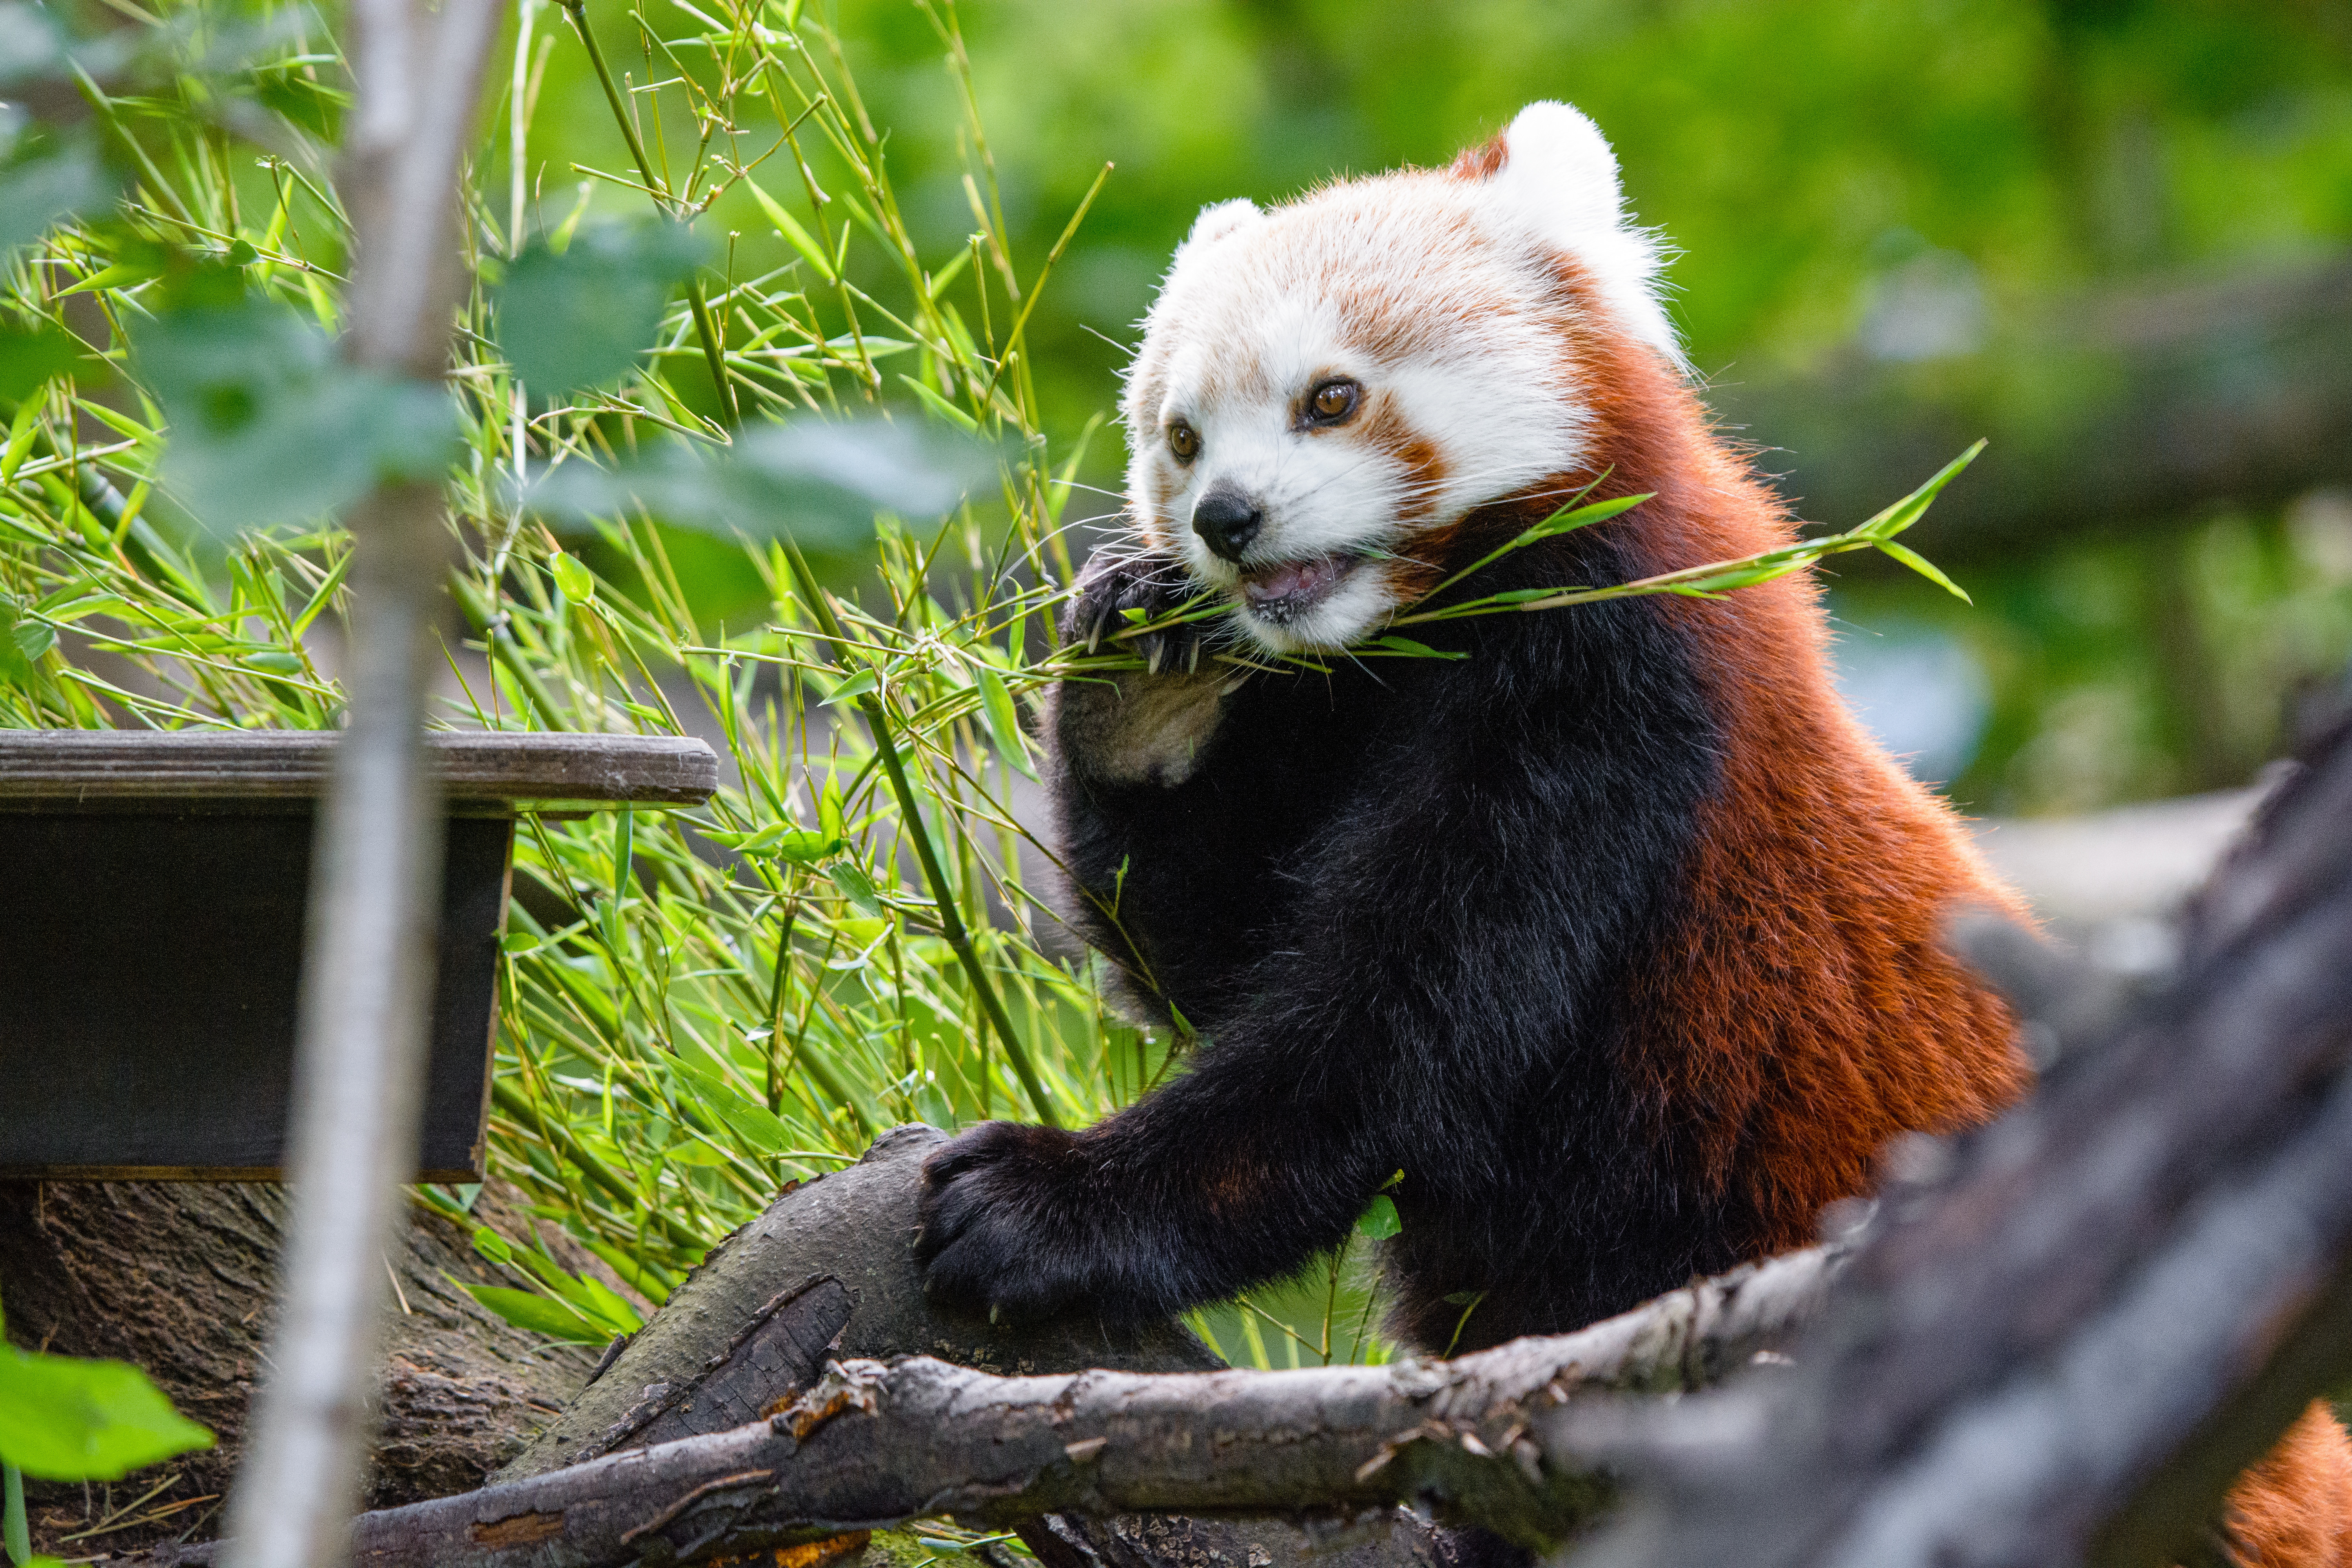 145499 download wallpaper Animals, Red Panda, Panda, Bamboo, Funny, Wood, Tree screensavers and pictures for free